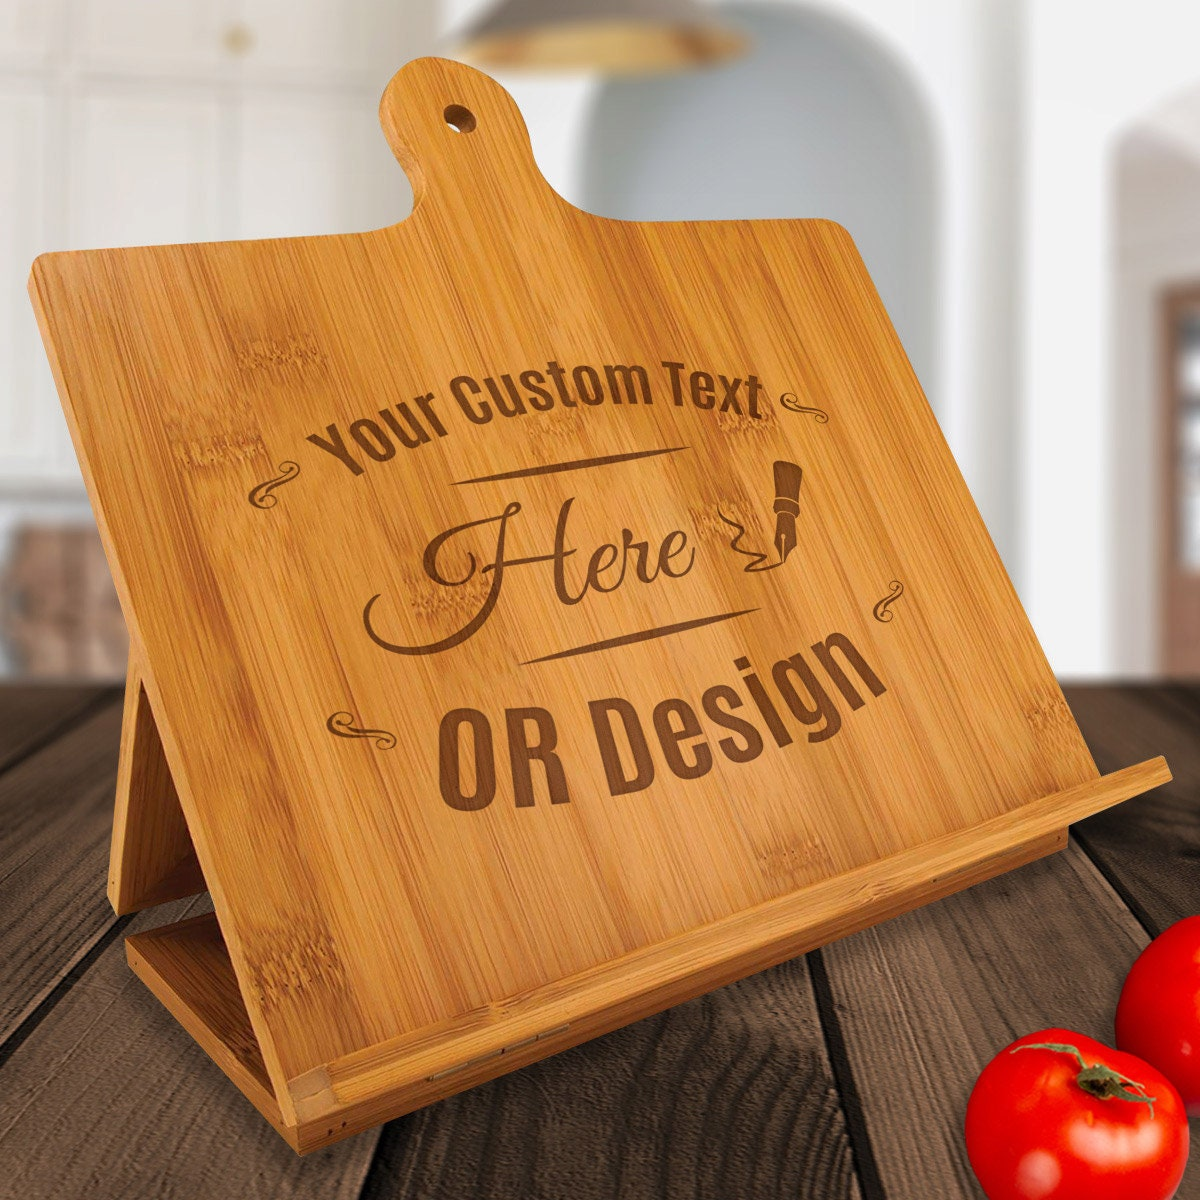 Personalized Cook Chef Gift Recipe Book Phone Stand Easel Made with Love by Name